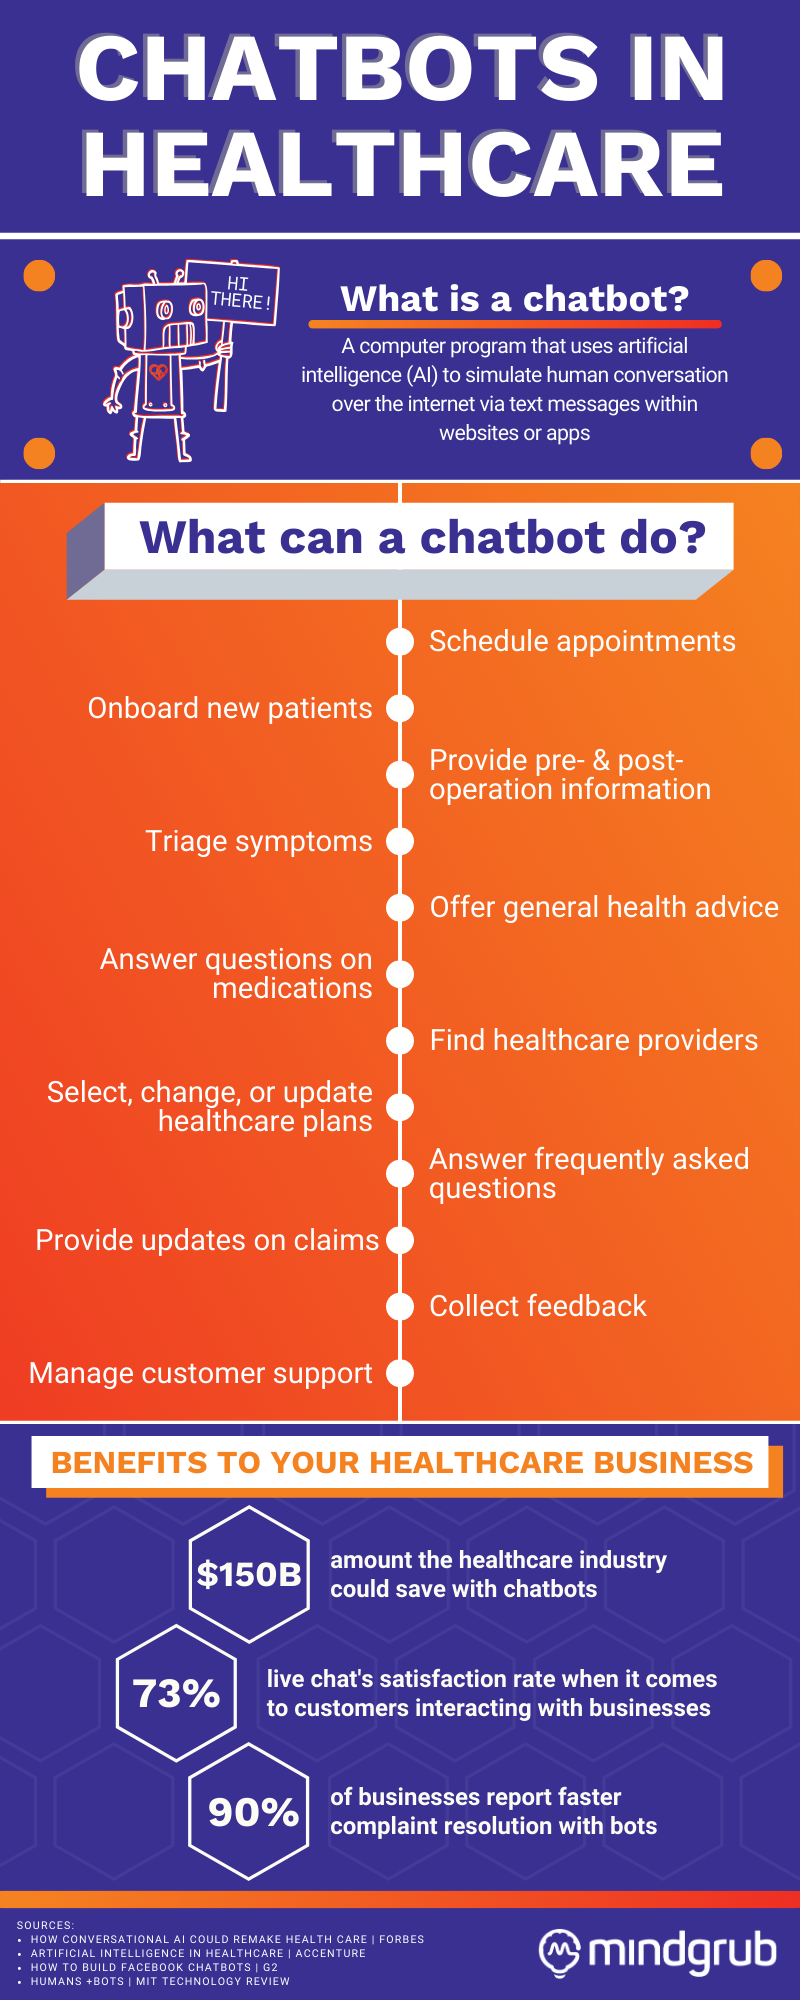 Chatbots in Healthcare Infographic. What is a Chatbot? A computer program that uses artificial intelligence (AI) to simulate human conversation over the internet via text messages within websites or apps. What Can a Chatbot Do? Schedule appointments, onboard new patients, provide pre- and post-operation information, triage symptoms, provide advice on general health or diagnosed conditions, answer questions on and provide instructions for medications, find healthcare providers, help choose, change, and update healthcare plans, answer questions about billing, provide updates on claims, collect feedback, handle customer support and answer FAQs. Benefits to Your Healthcare Business: 1) Accenture predicts these changes could save the health care industry $150 billion a year by 2026. 2) 90% of businesses reporting faster complaint resolution with bots MIT Technology Review. 3) Live chat software has a 73% satisfaction rate as a way for customers to interact with businesses (G2's Facebook Chatbots Guide, 2018).